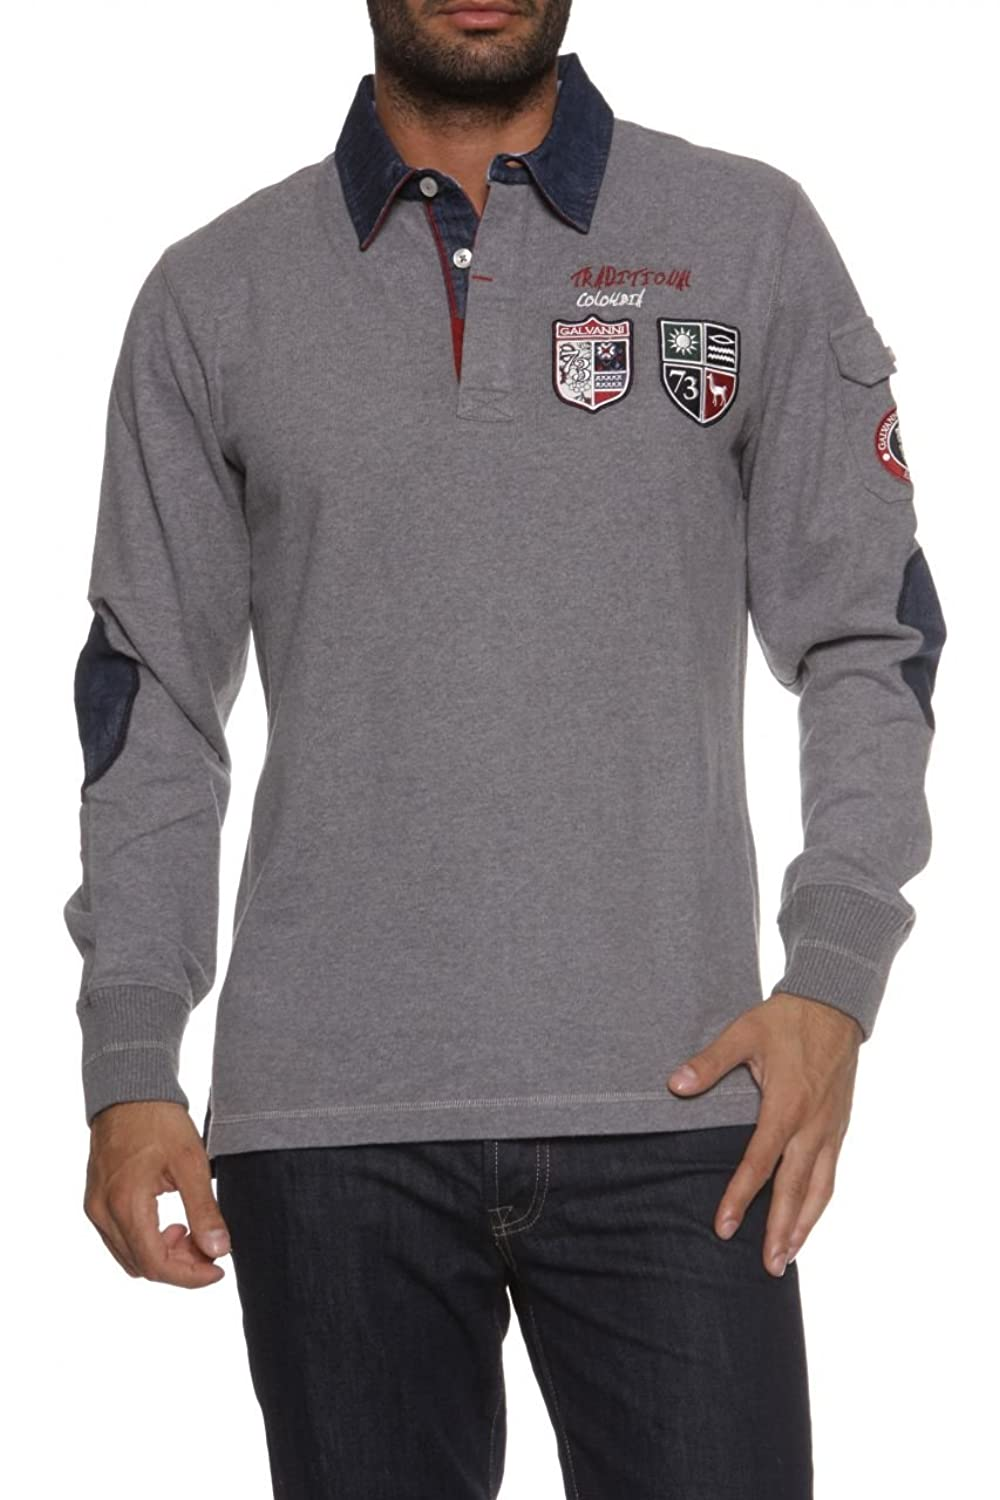 Galvanni Long Sleeve Polo Shirt ADELGARDO, Color: Grey